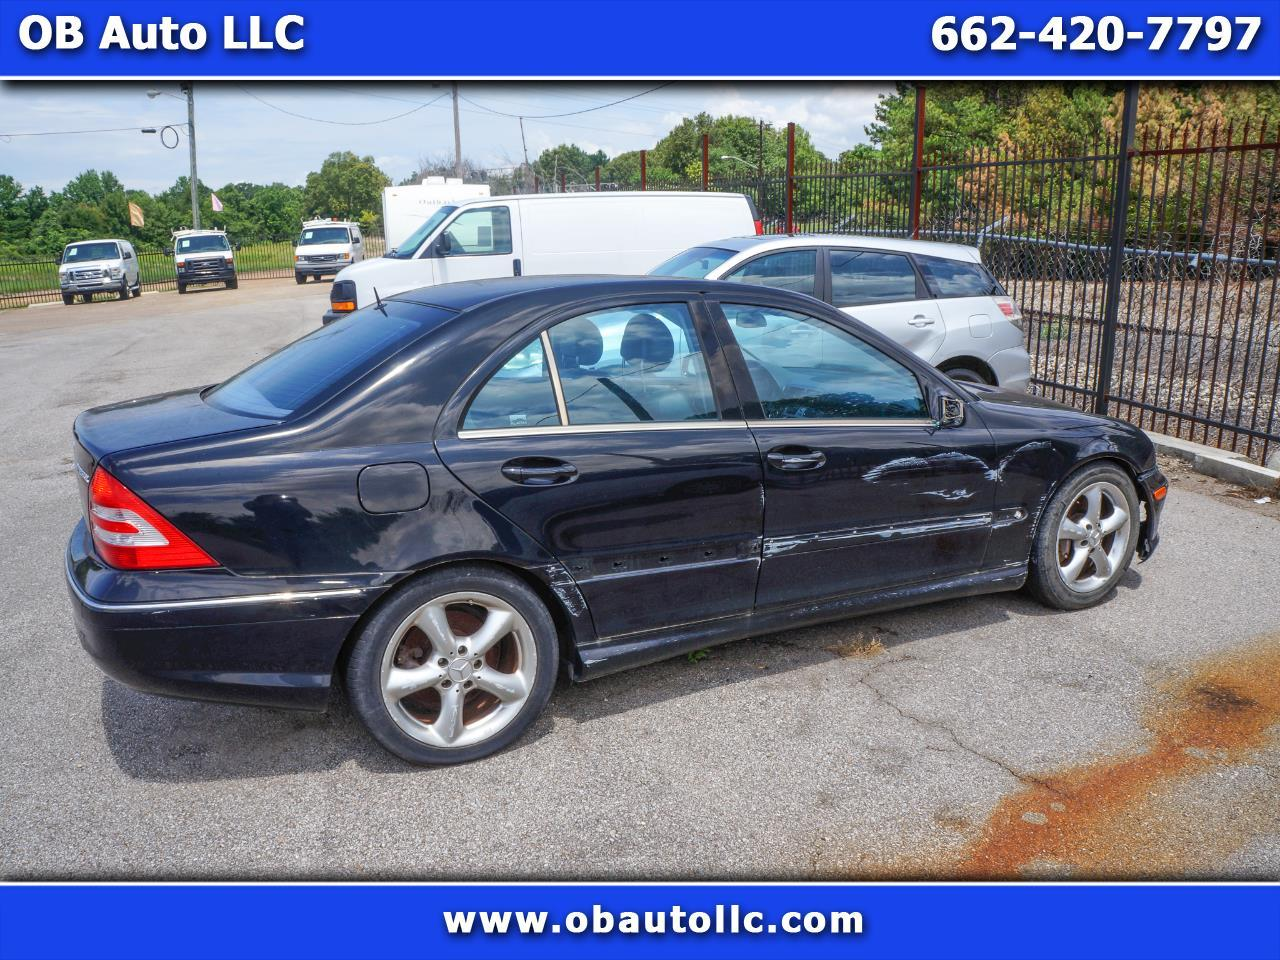 Cheap Used Cars under $1,000 in Memphis, TN